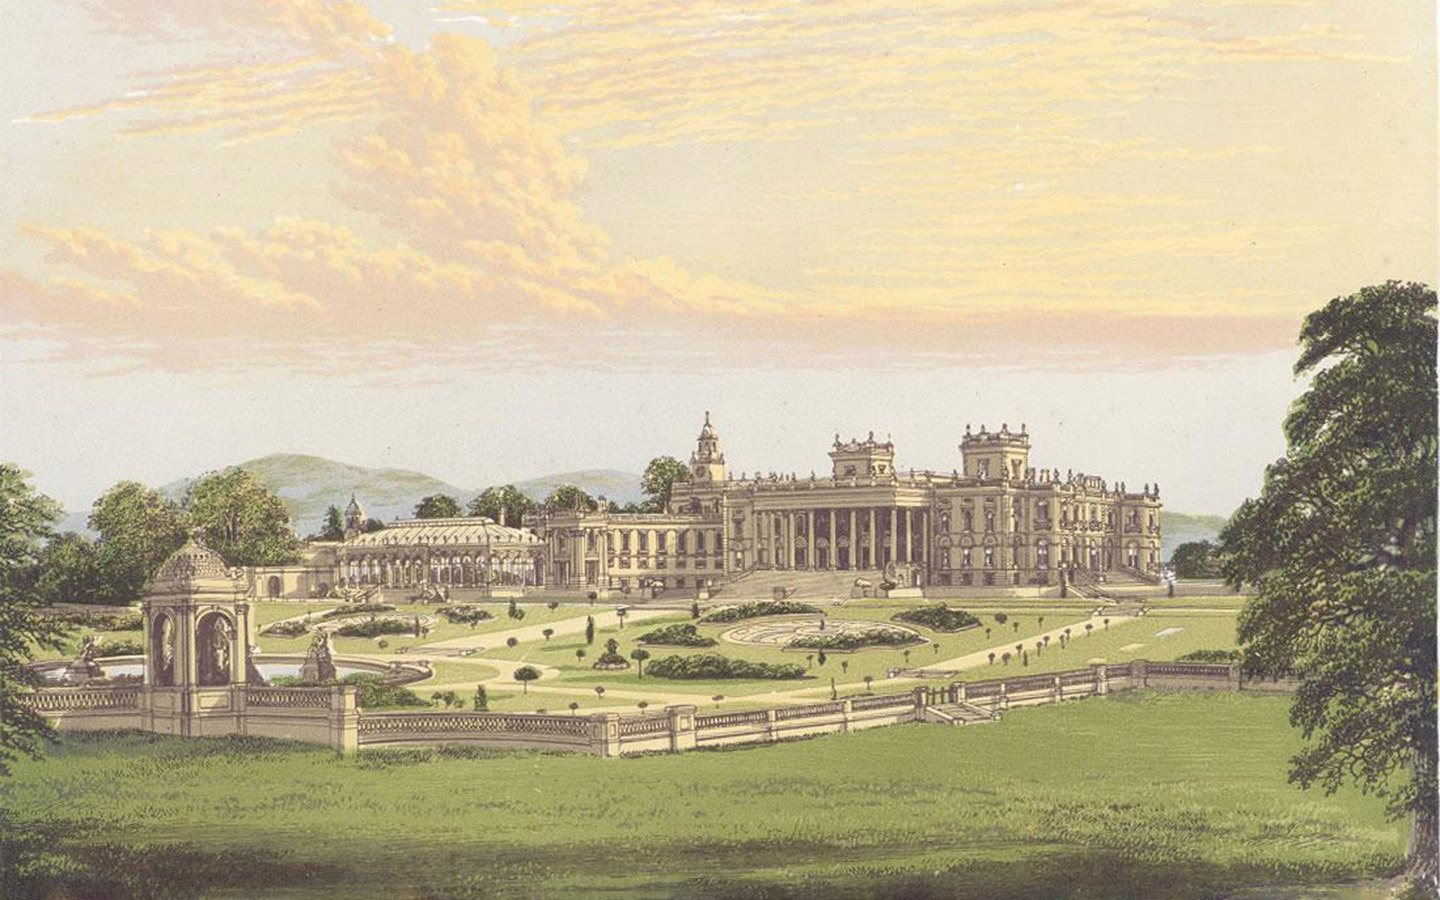 Illustration of Witley Court in 1880